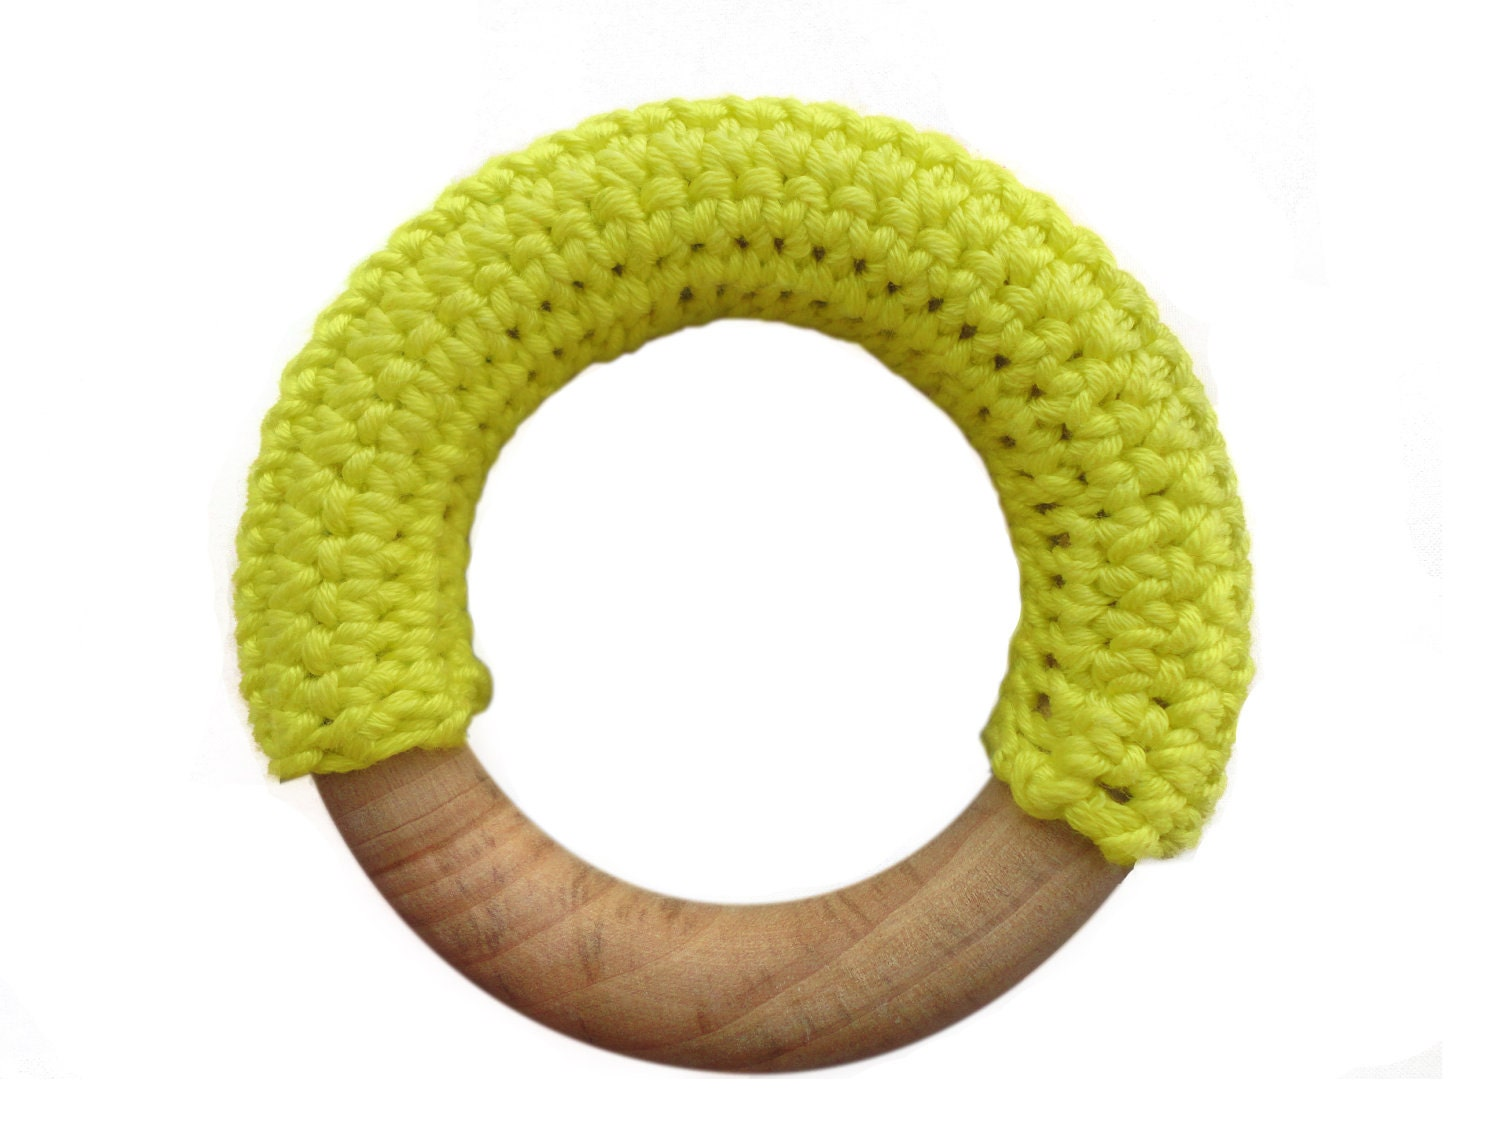 Crochet covered natural wooden baby teething ring  teether (lemon yellow)